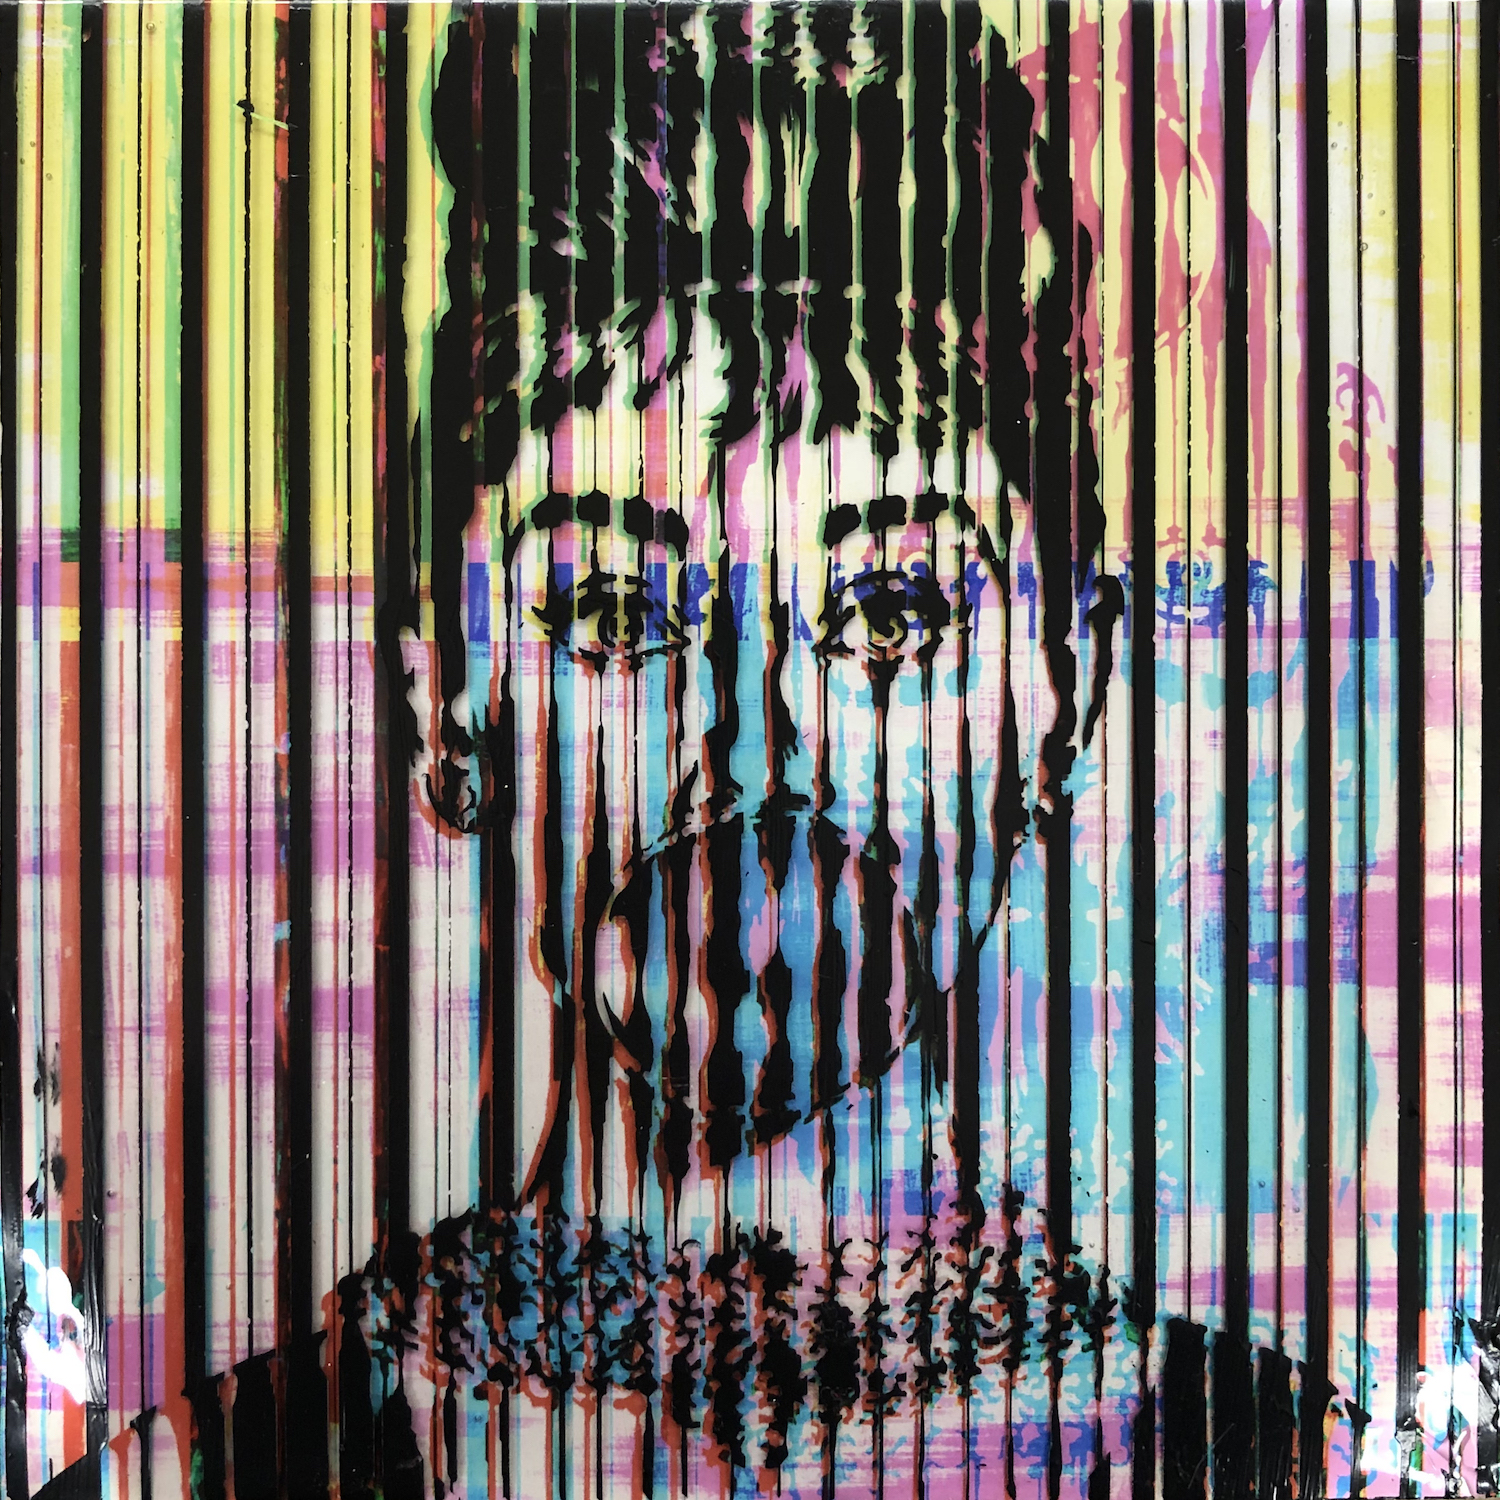 Sean Christopher Ward and Nick Drake Collaboration - Bubble Pop Audrey Glitched - Acrylic, Photograph and ArtResin on Wood Panel - 8x8x1.5 - 2018 - 250.jpg